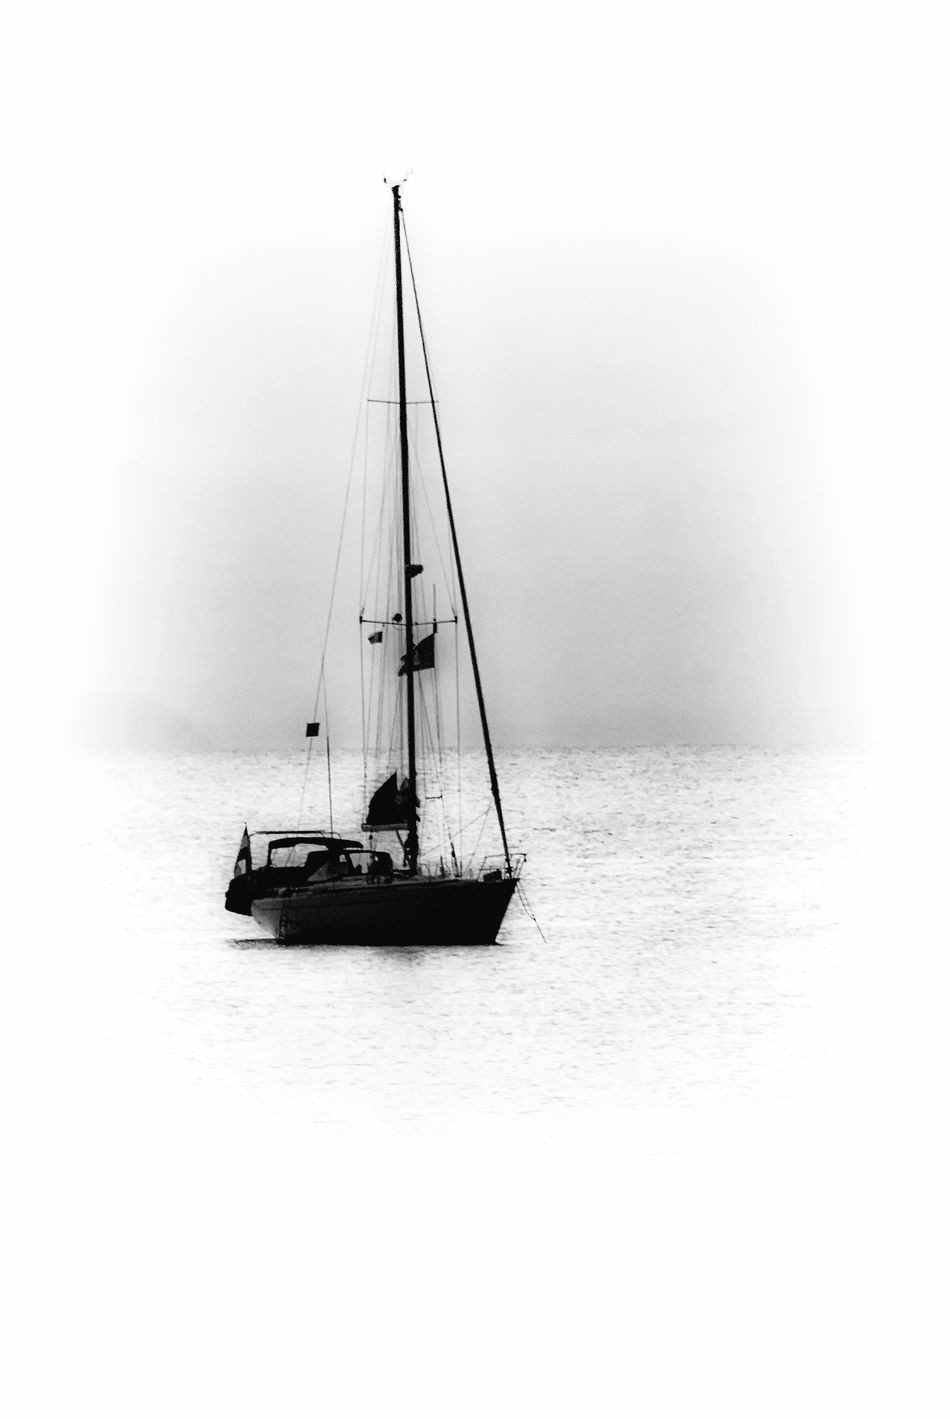 Sailing Boat Black & White Black And White Blackandwhite Blackandwhite Photography Bnw Boat Bw Bw_collection Idyllic Journey Leisure Activity Lifestyles Mast Monochromatic Monochrome Ocean Sailboat Sailer Sailing Sailing Boat Sea Ship Tranquil Scene Tranquility Water